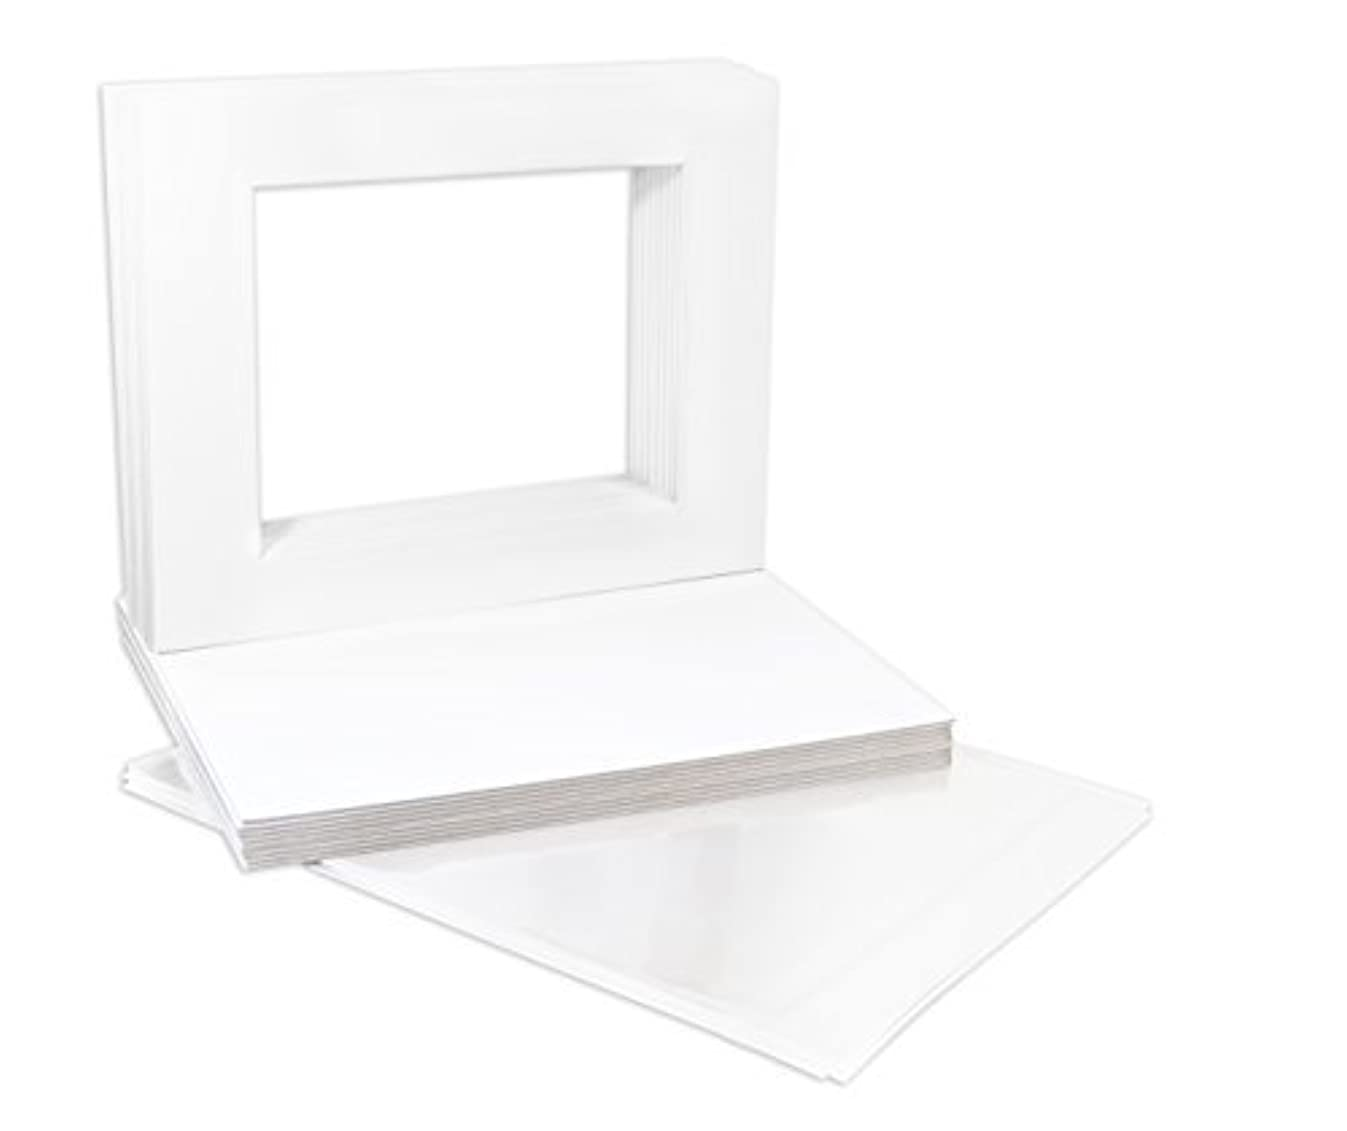 Golden State Art, Pack of 25, 11x14 White Picture Mat Set - Fit 8x10 Photos/Prints - Acid Free Bevel Pre-Cut White Core Mattes - with 25 Backing Board & Clear Bags